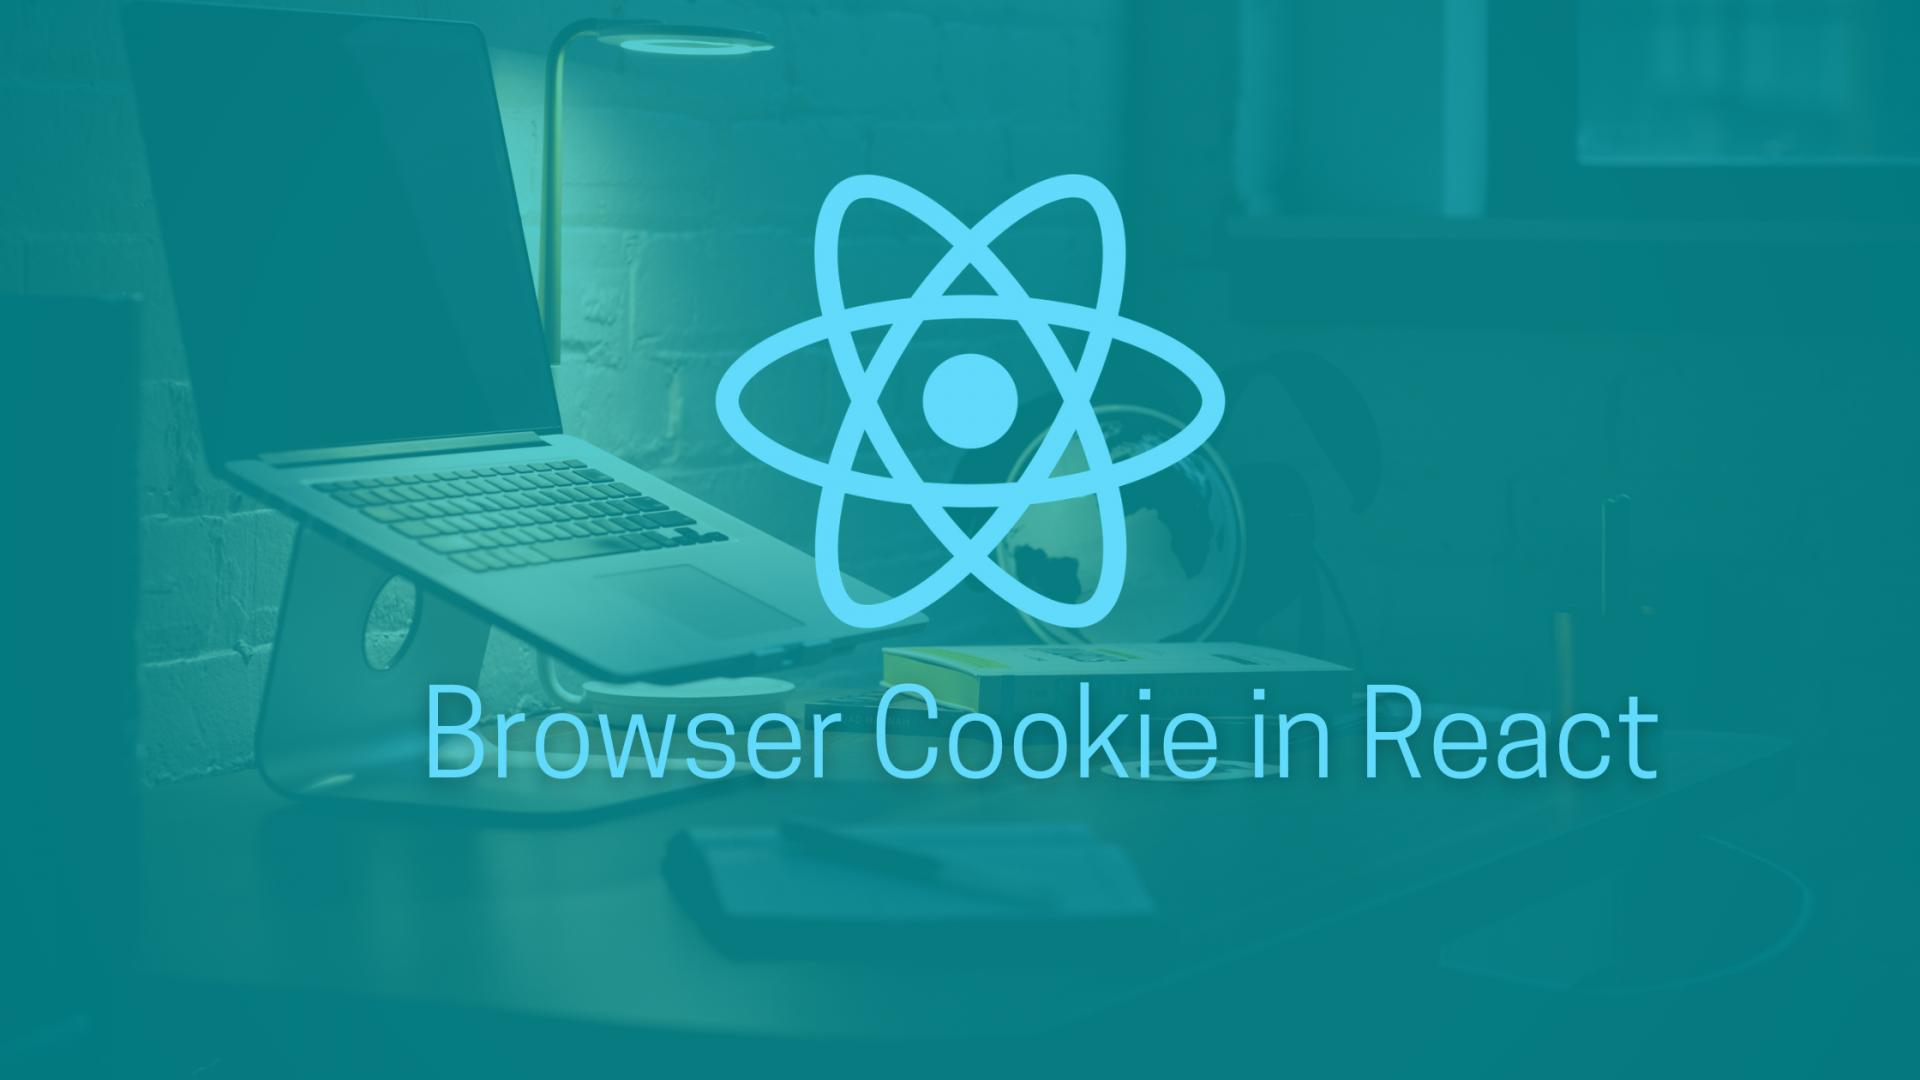 Working with browser cookie in React